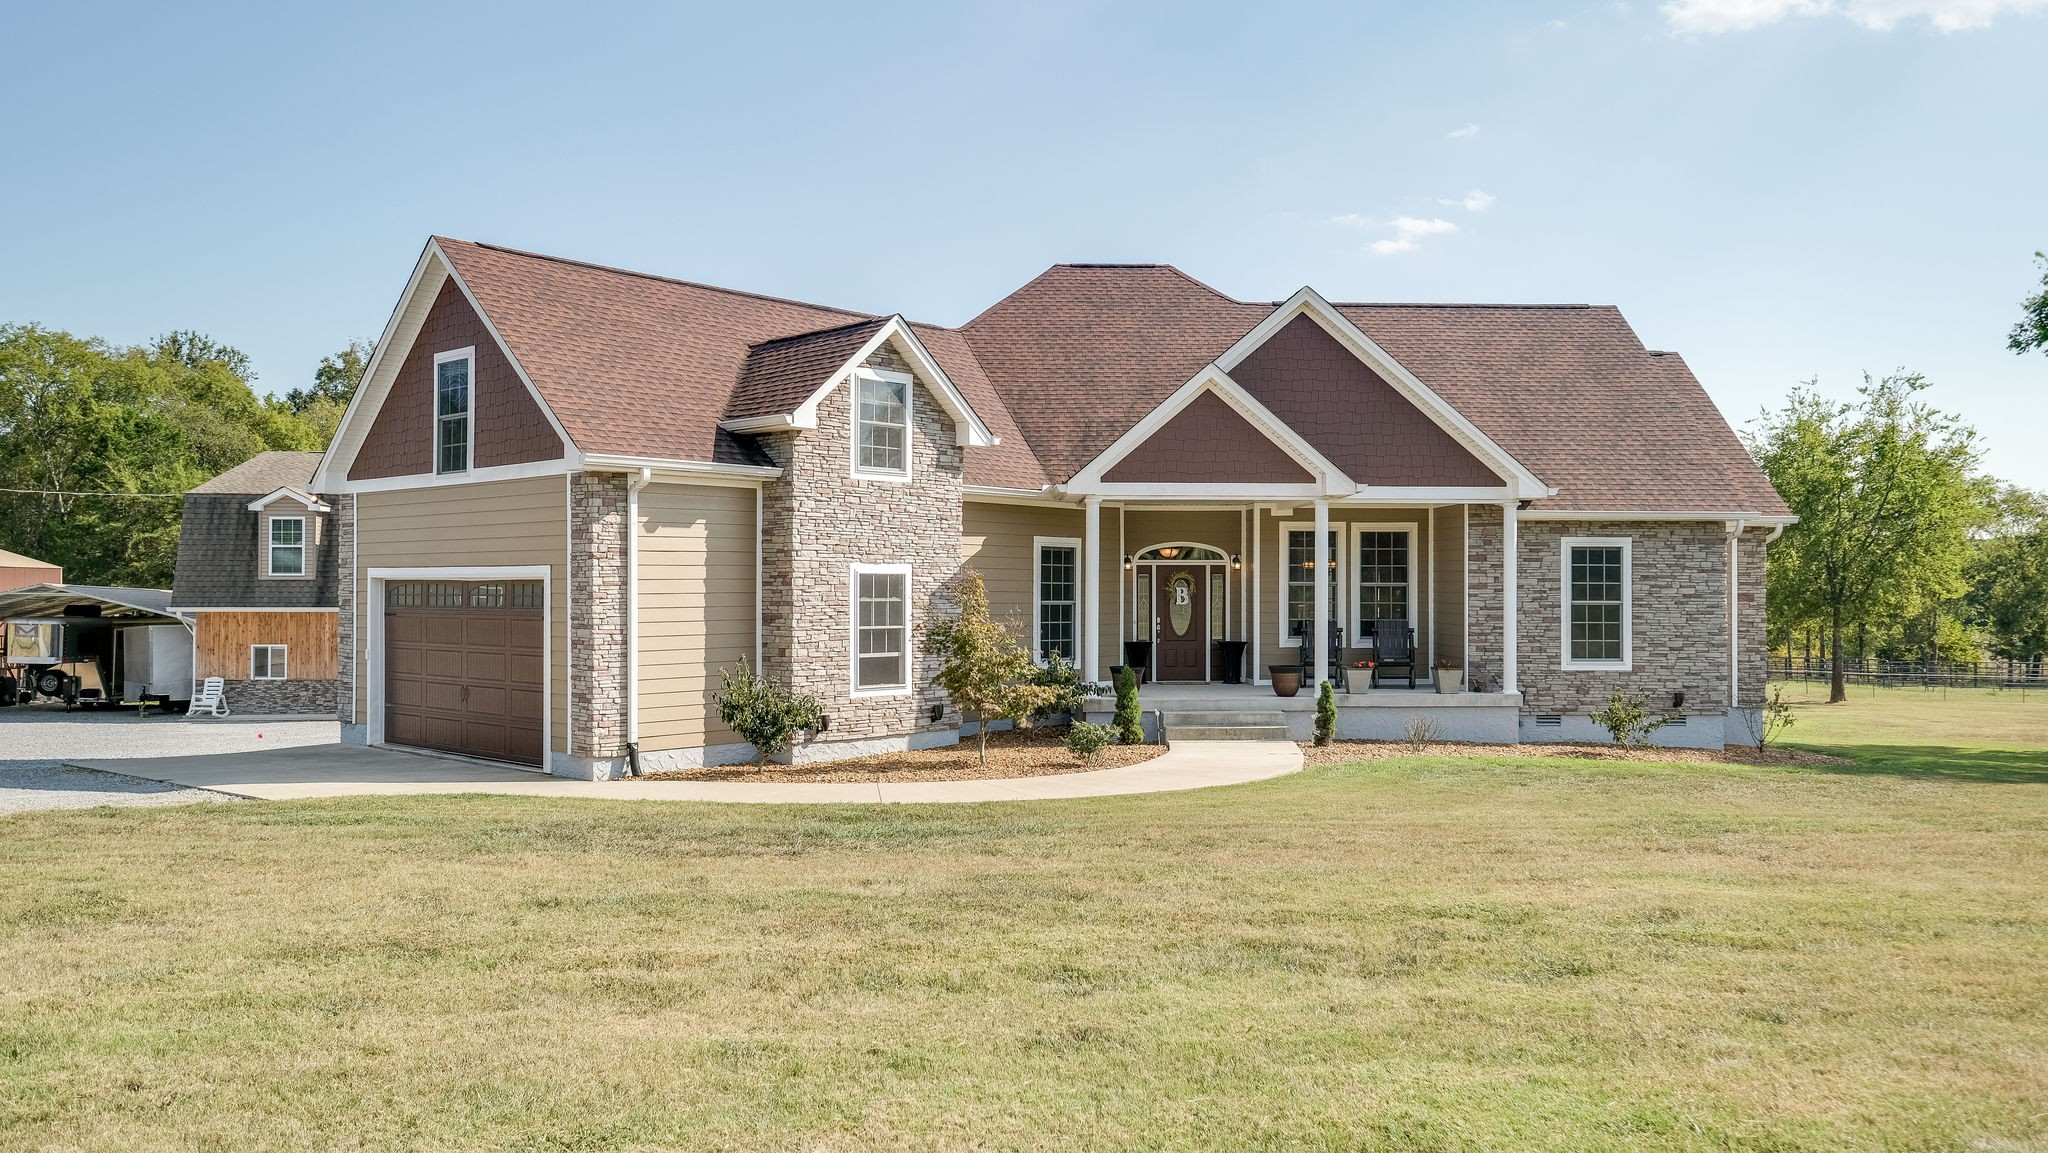 197 Turner Rd Property Photo - Watertown, TN real estate listing